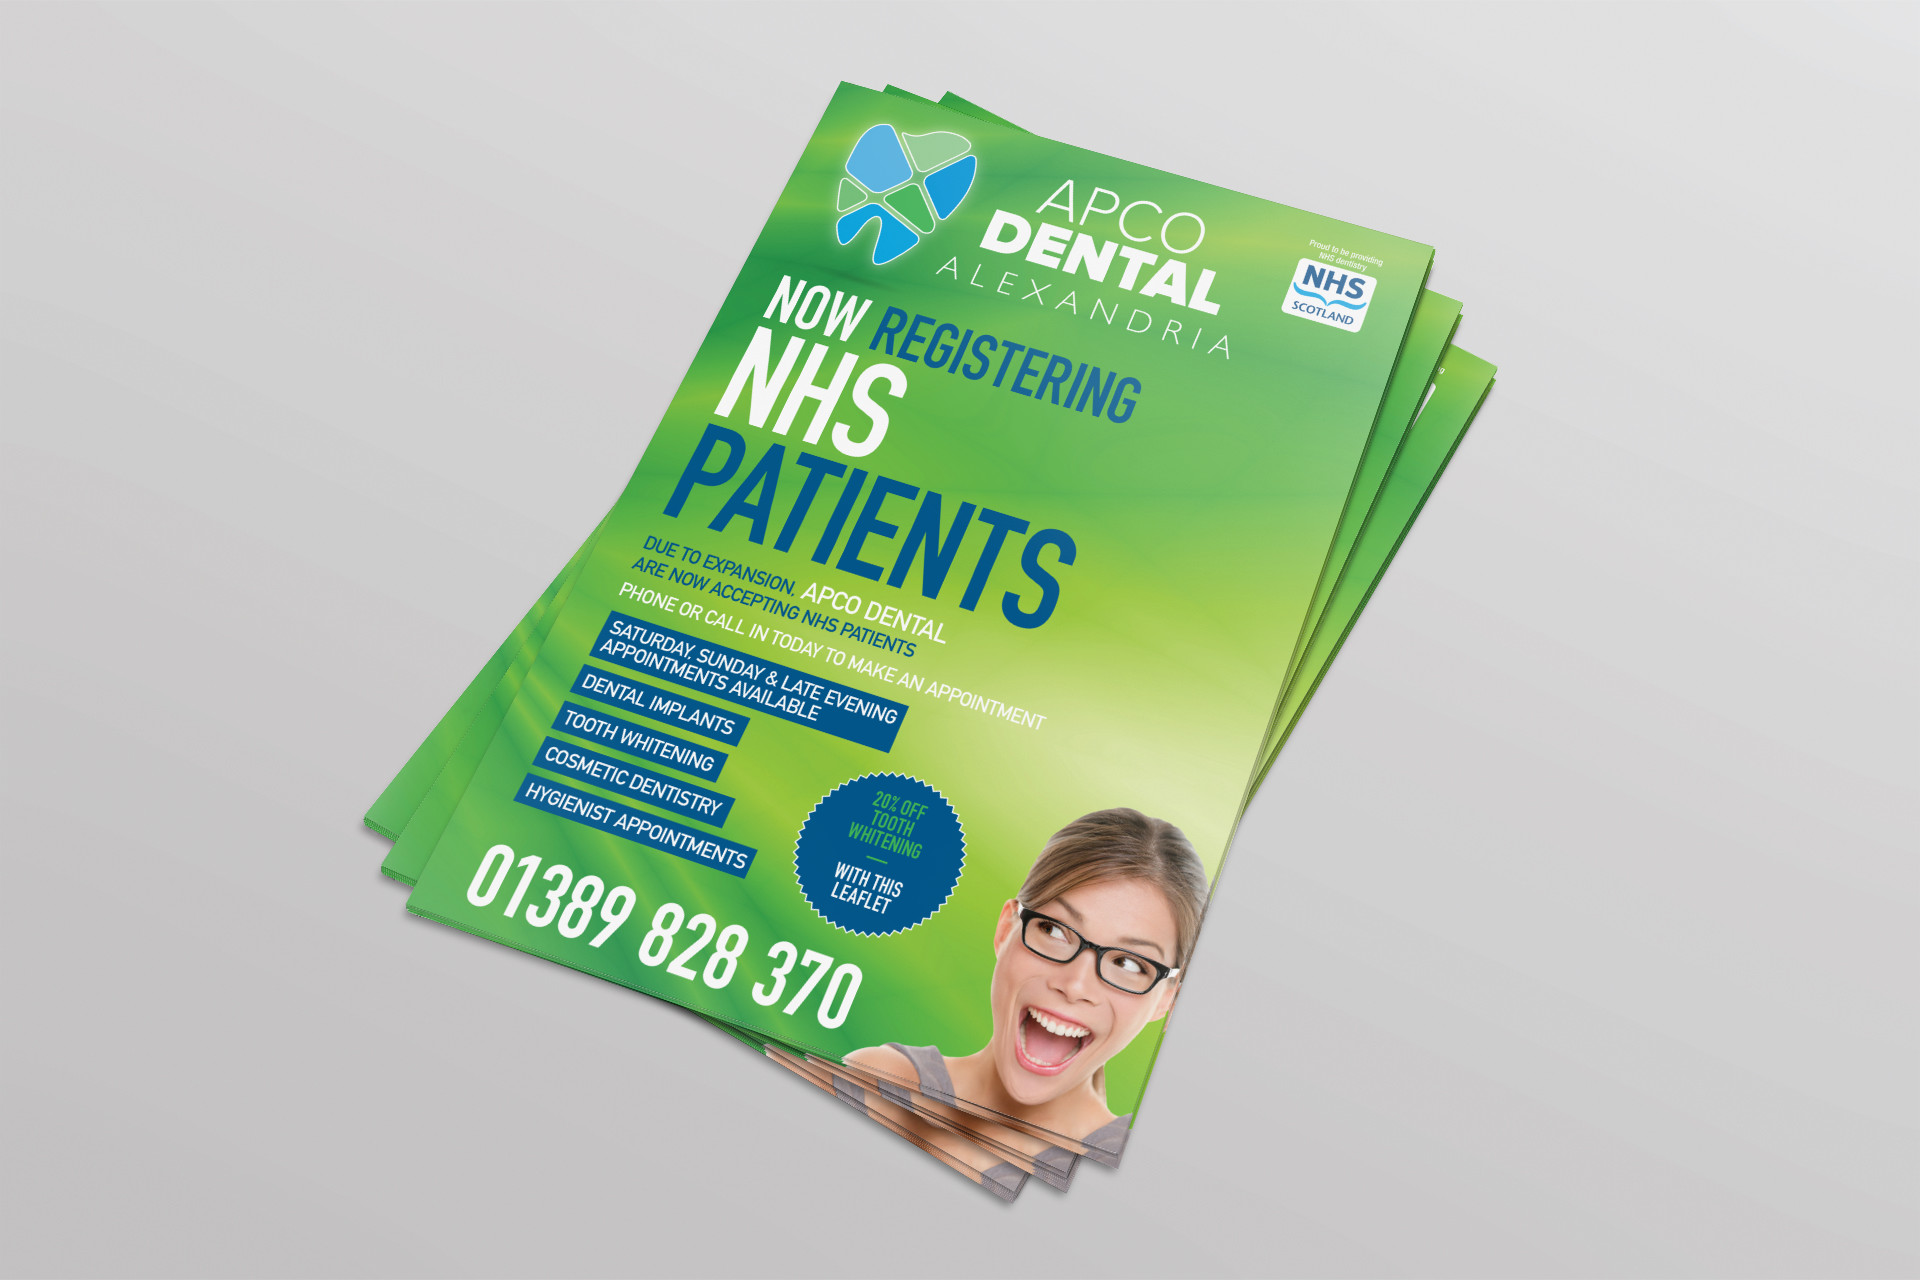 Flyer-design-Glasgow-Edinburgh-West-Lothian-02.jpg